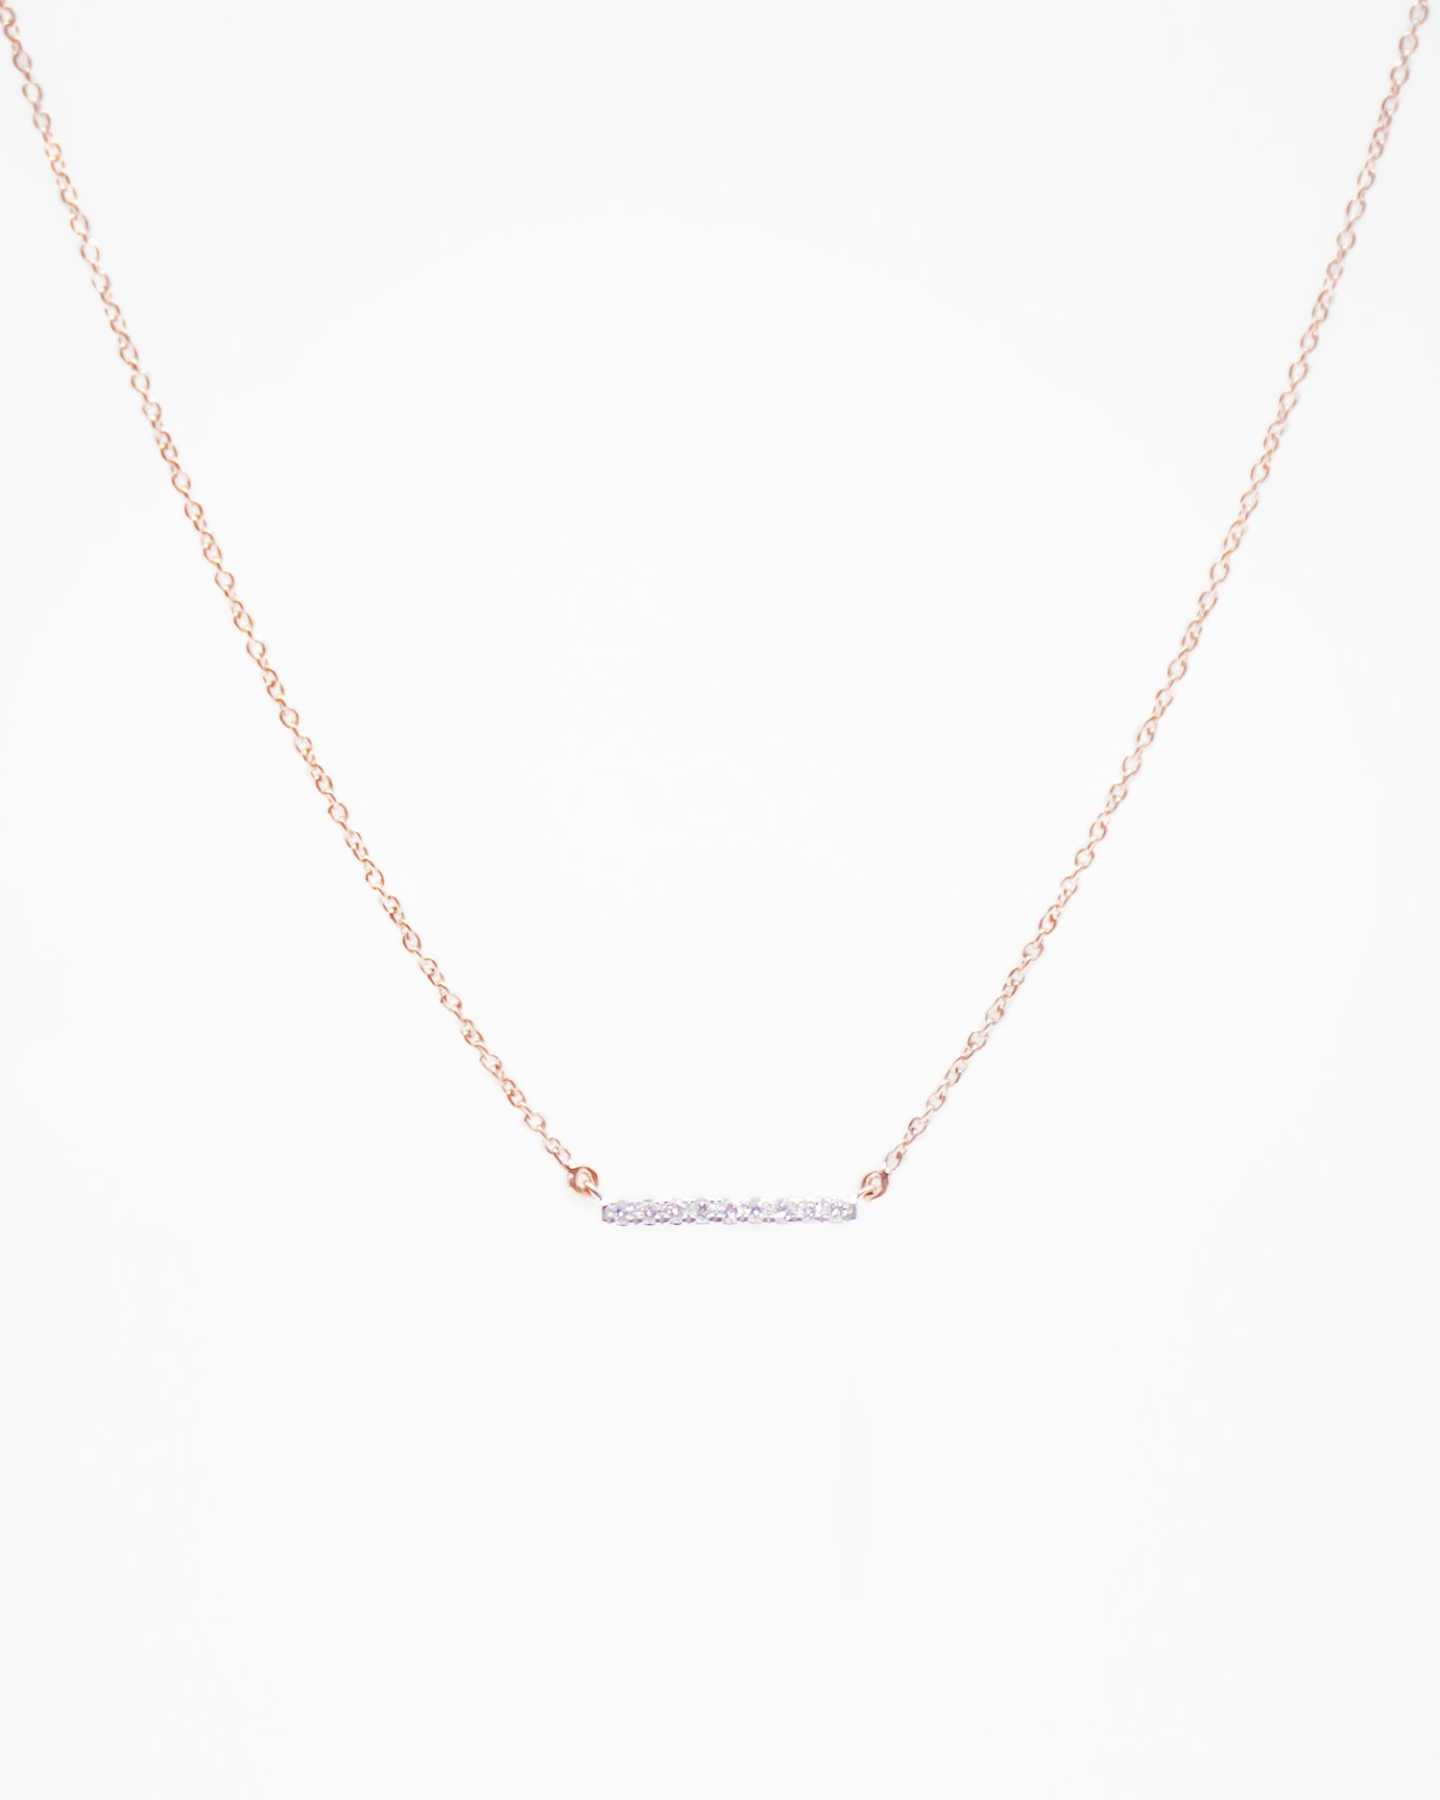 You May Also Like - Diamond Bar Necklace - Rose Gold